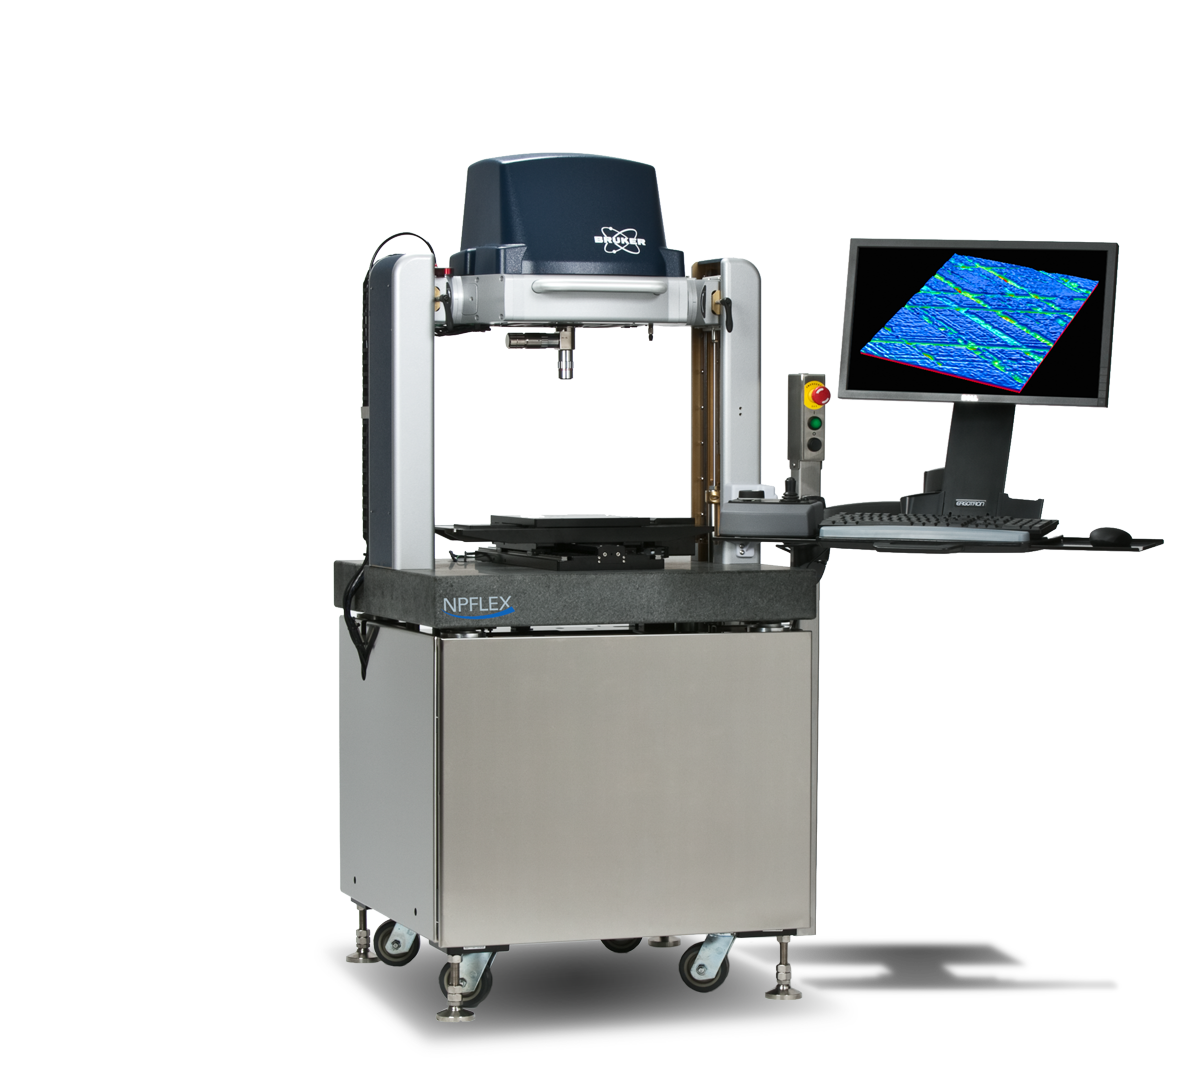 NPFLEX 3D Surface Metrology System